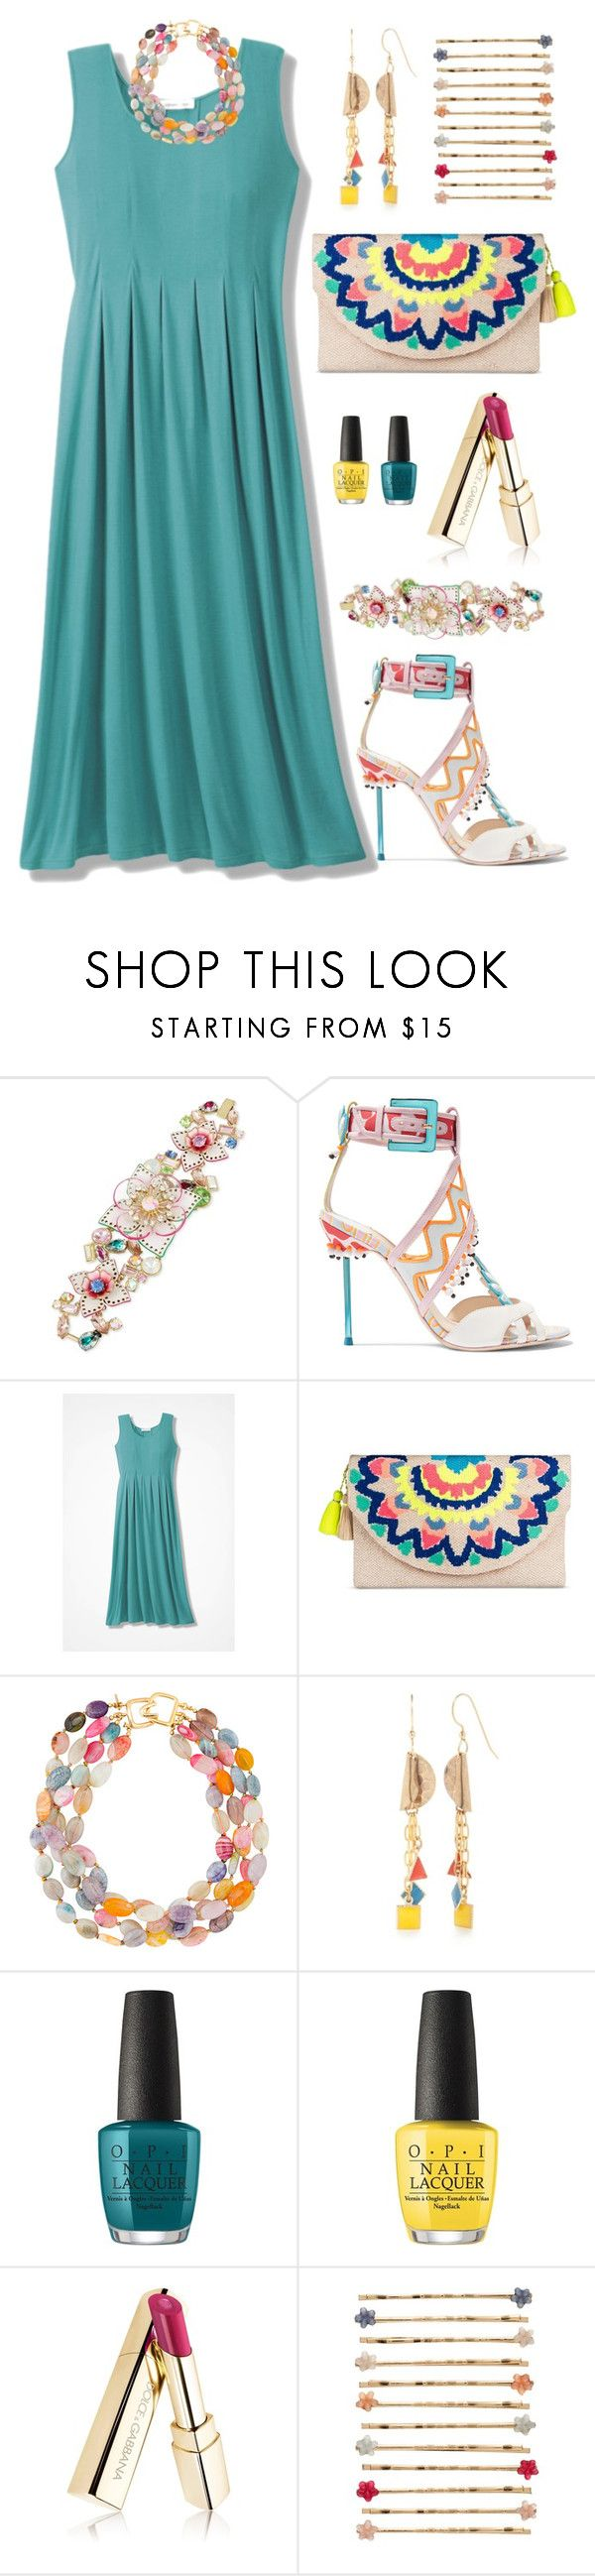 """Tealdrop"" by indirareeves on Polyvore featuring Betsey Johnson, Sophia Webster, Merona, Kenneth Jay Lane, Silver Forest, OPI and LC Lauren Conrad"